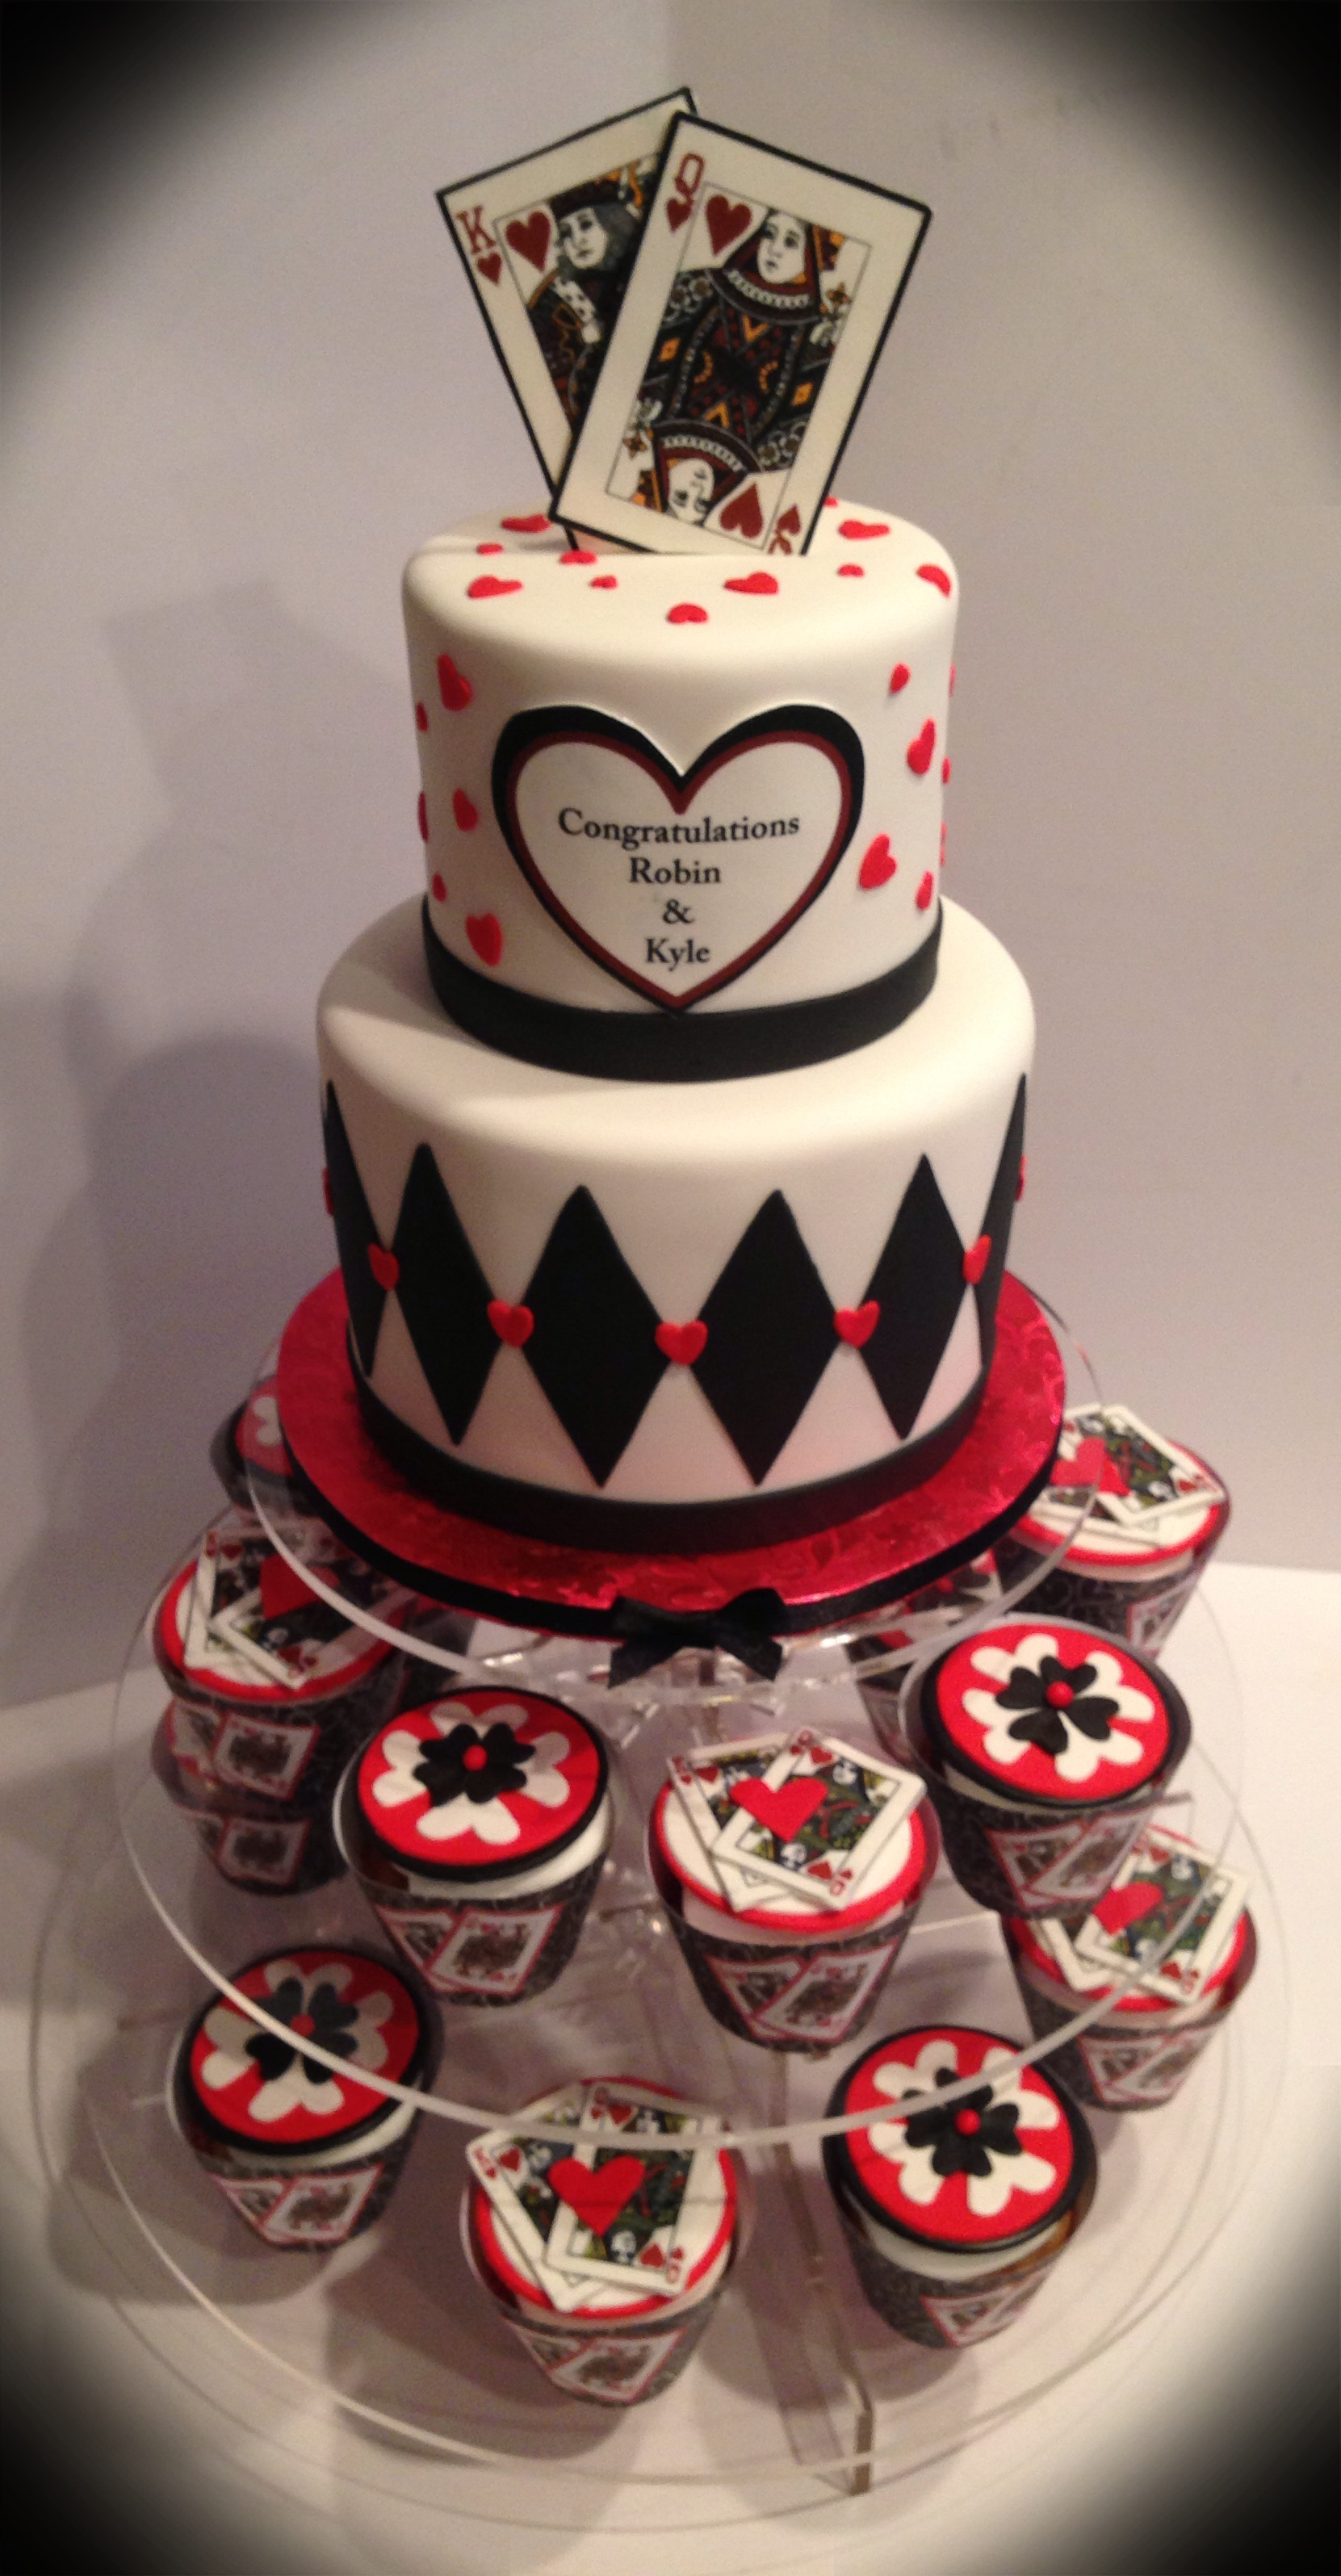 King and queen of hearts cake and cupcakes Cakes Pinterest